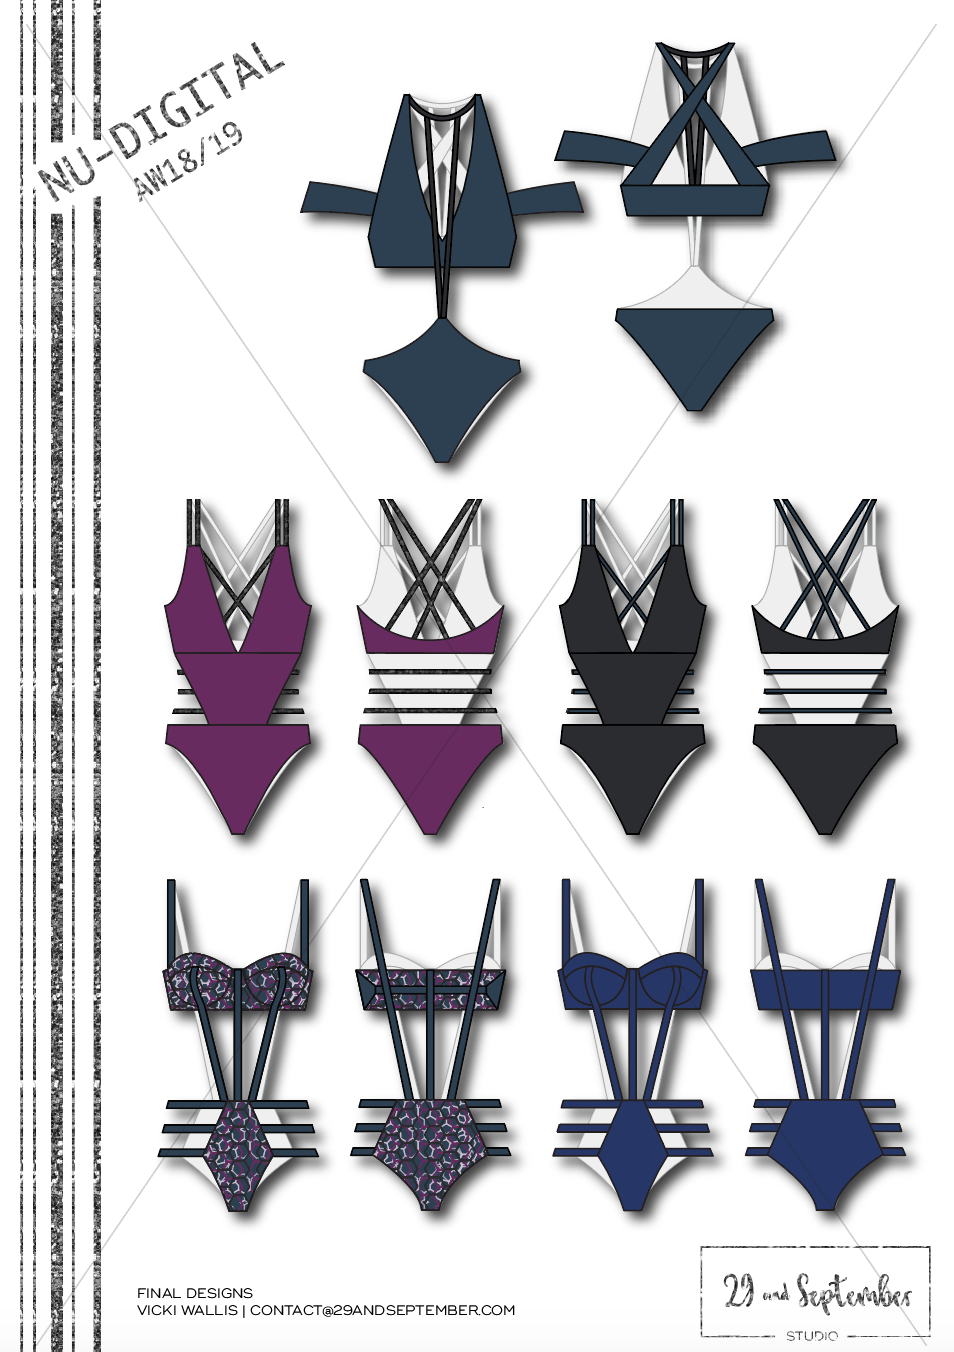 How to start a swimwear brand | swimwear technical drawings designs | Swim inspiration | technical drawings for fitness apparel by 29andSeptember Studio